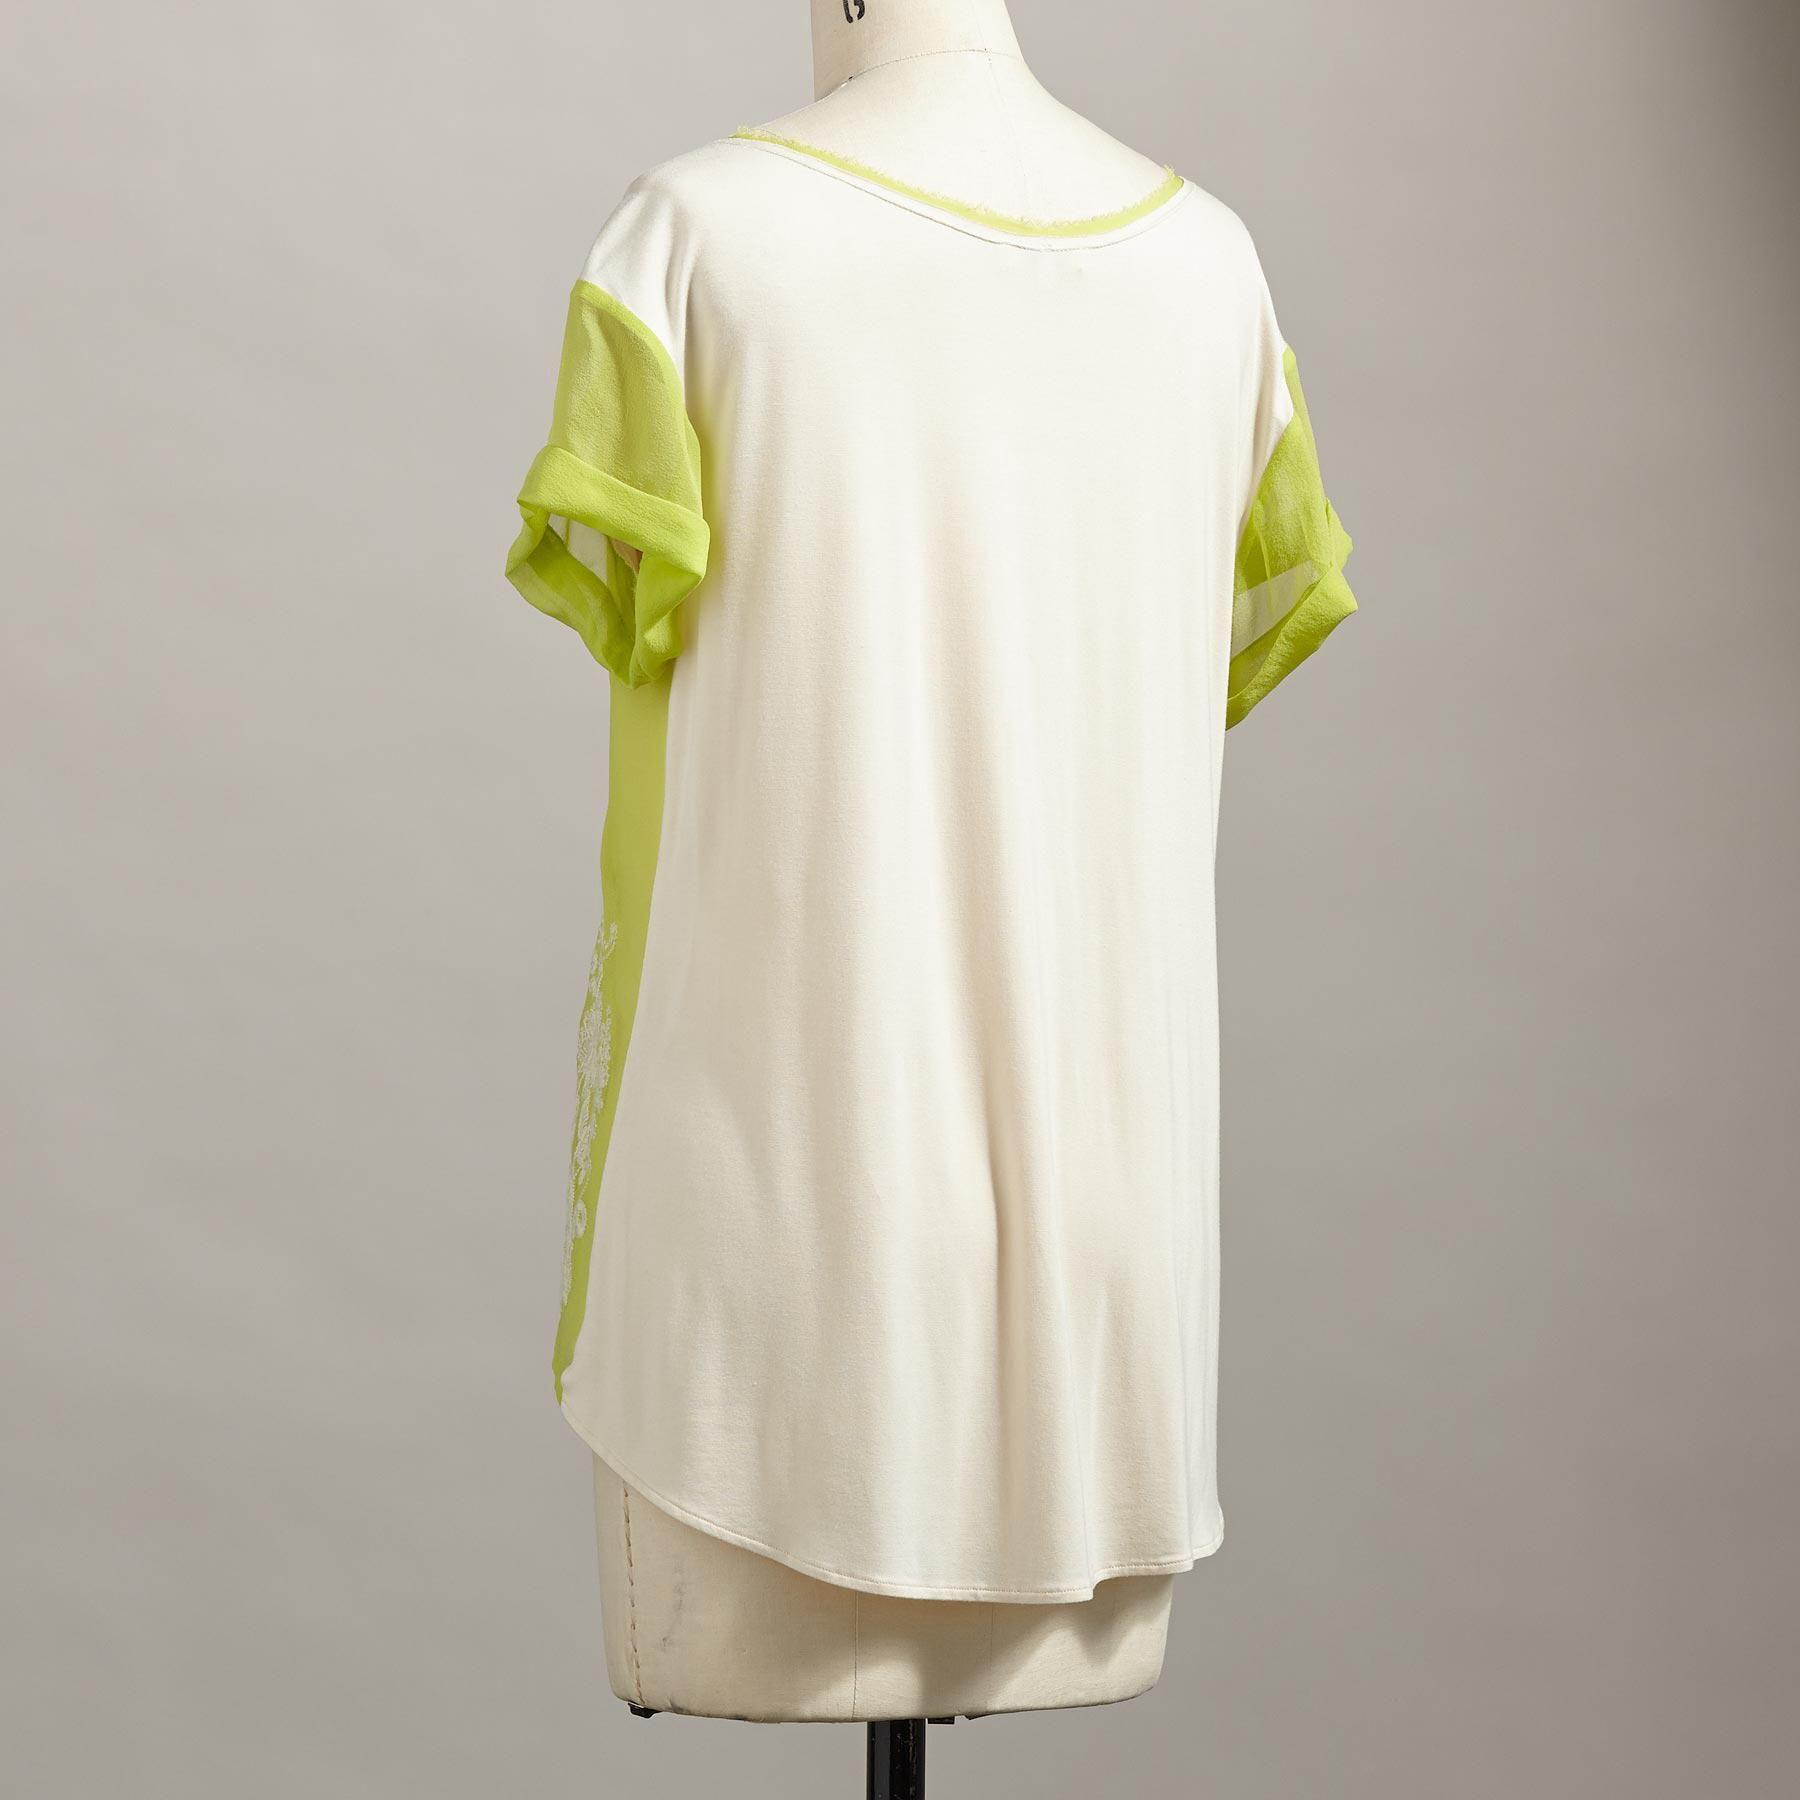 IDEAL GRACE TOP: View 2